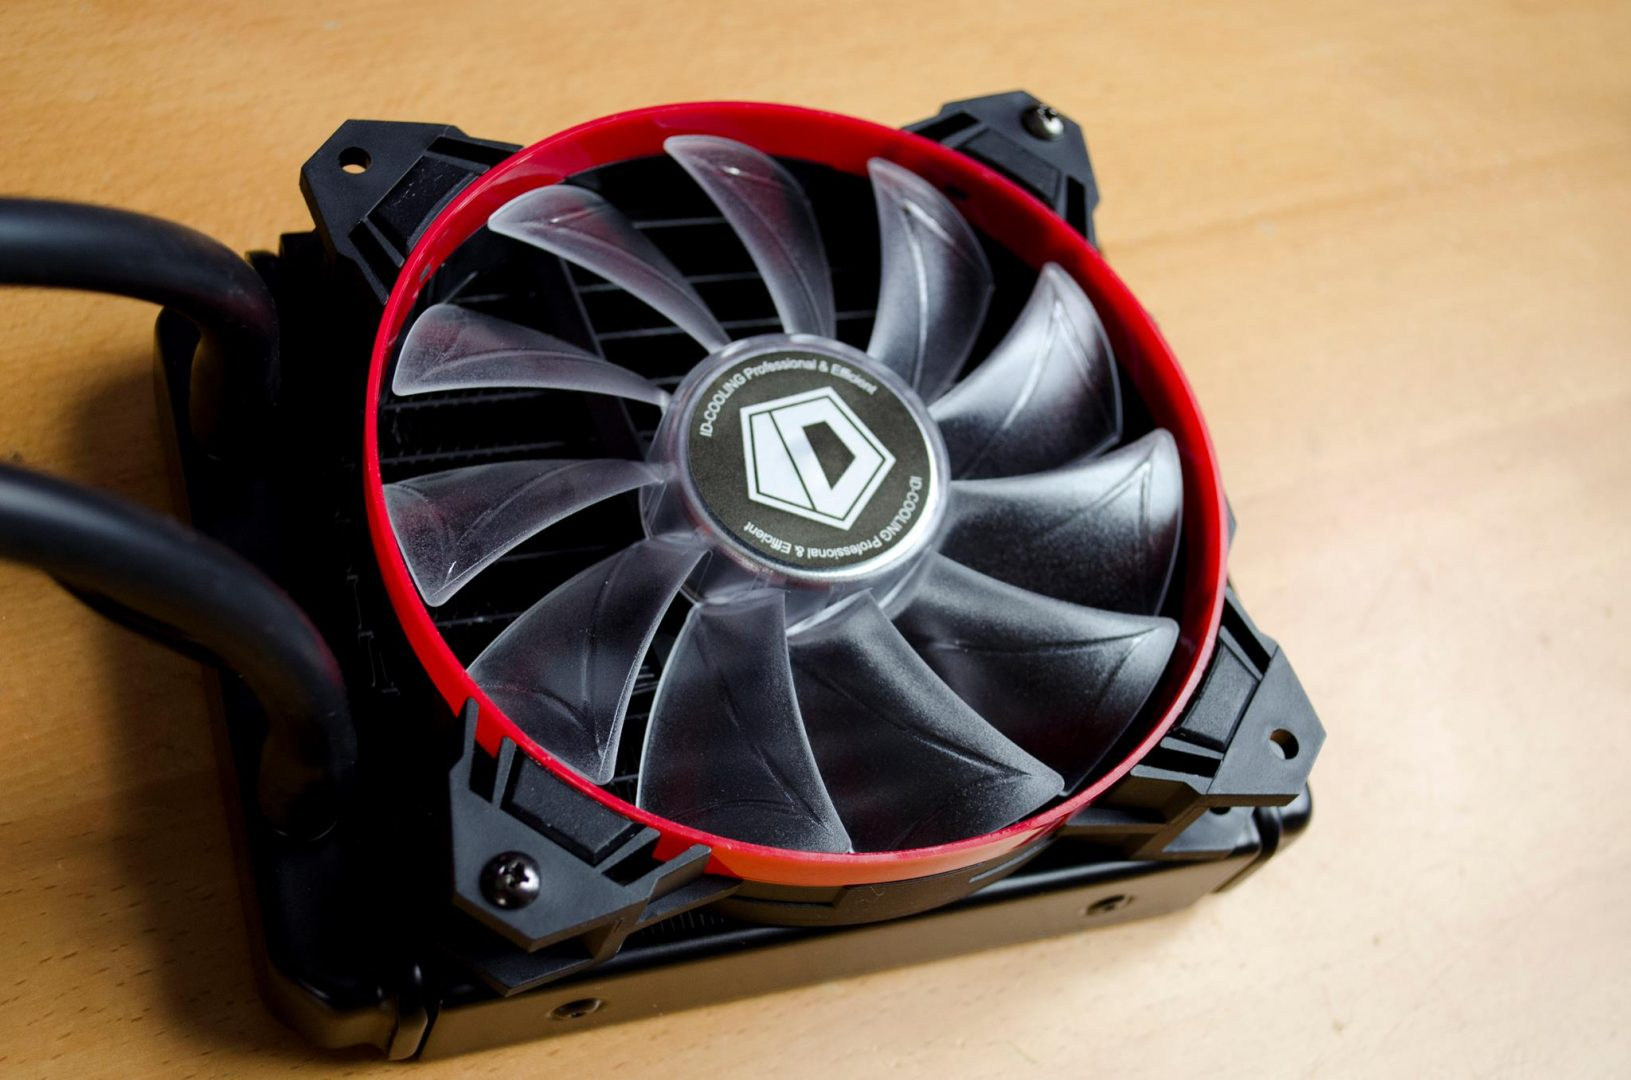 ID COOLING FROSTFLOW 120 CPU COOLER REVIEW_13